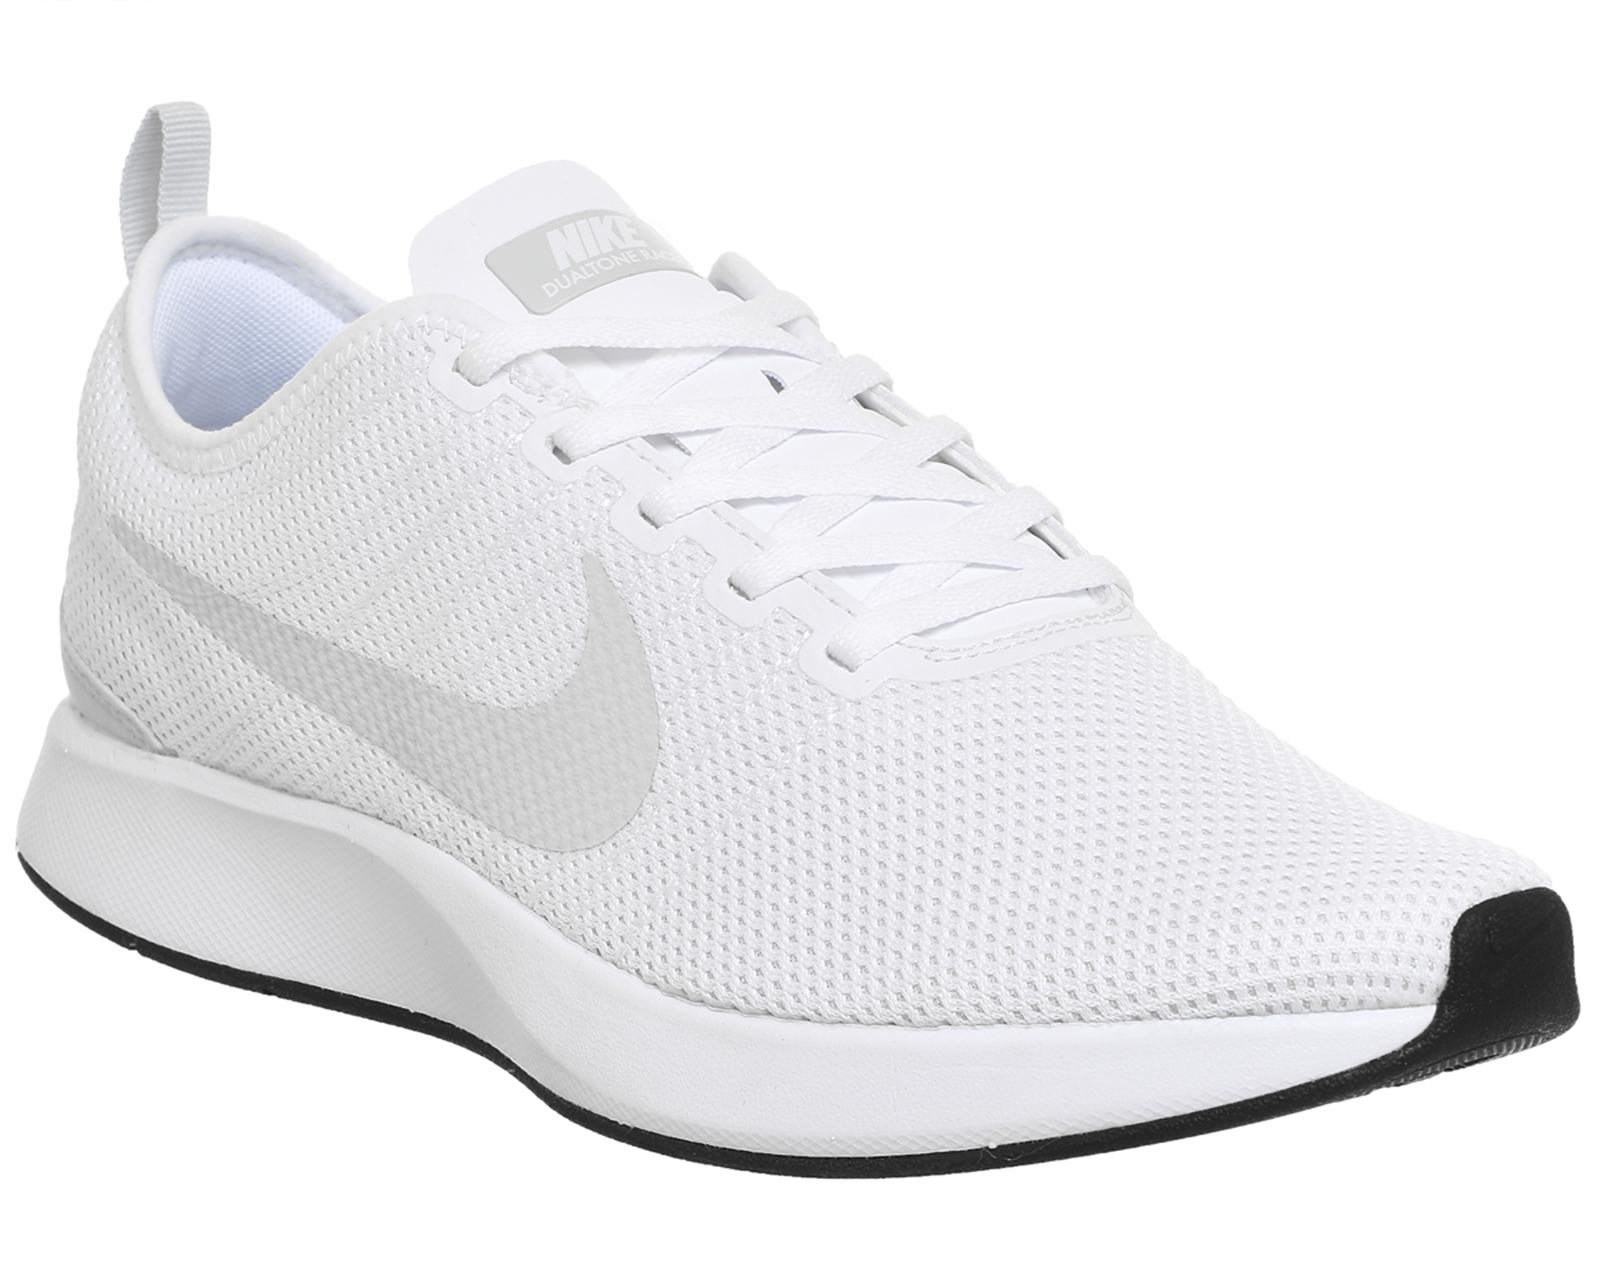 b14aa6e4dfaf Lyst - Nike Dualtone Racer in White for Men